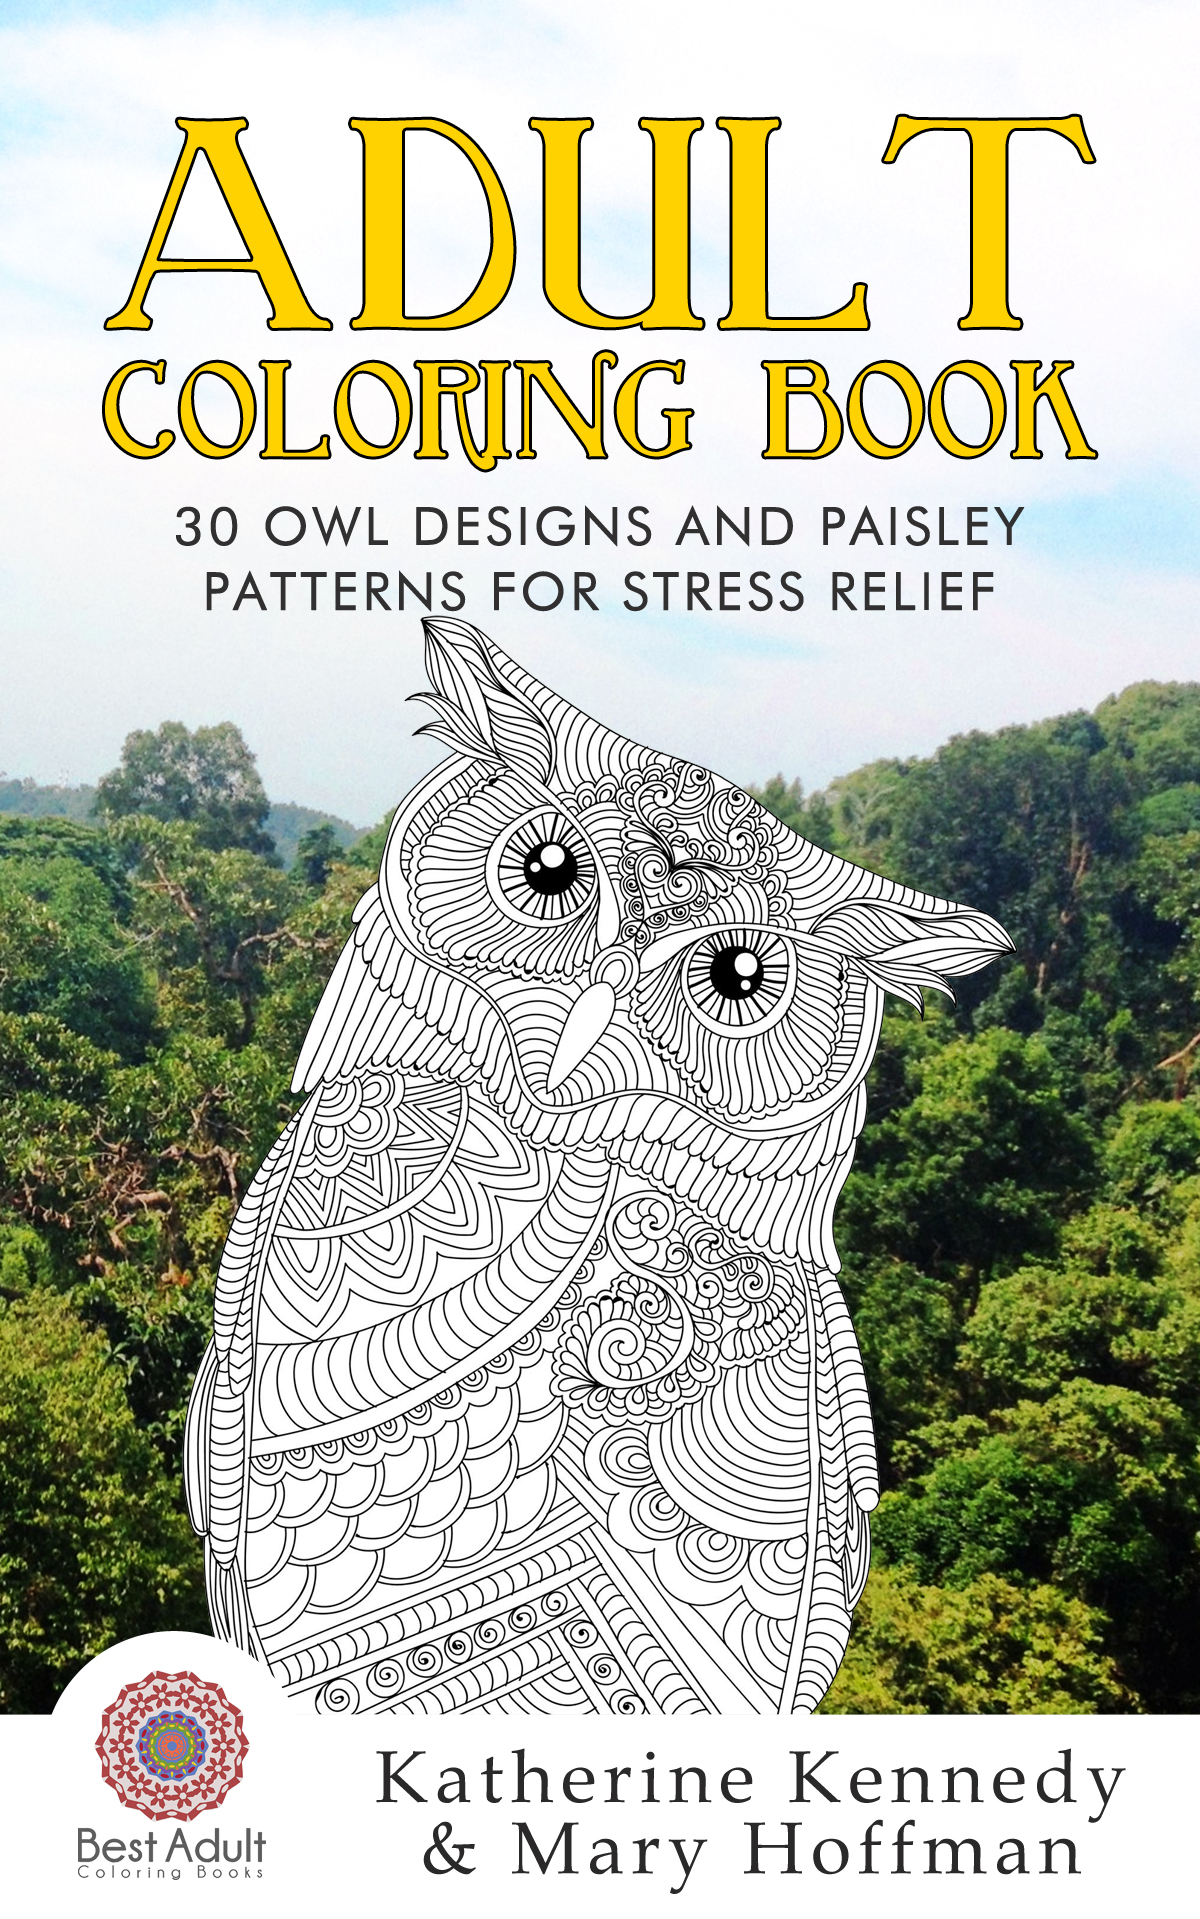 Coloring Book For Stress Relief : Adult coloring book: 30 owl designs and paisley patterns for stress relief